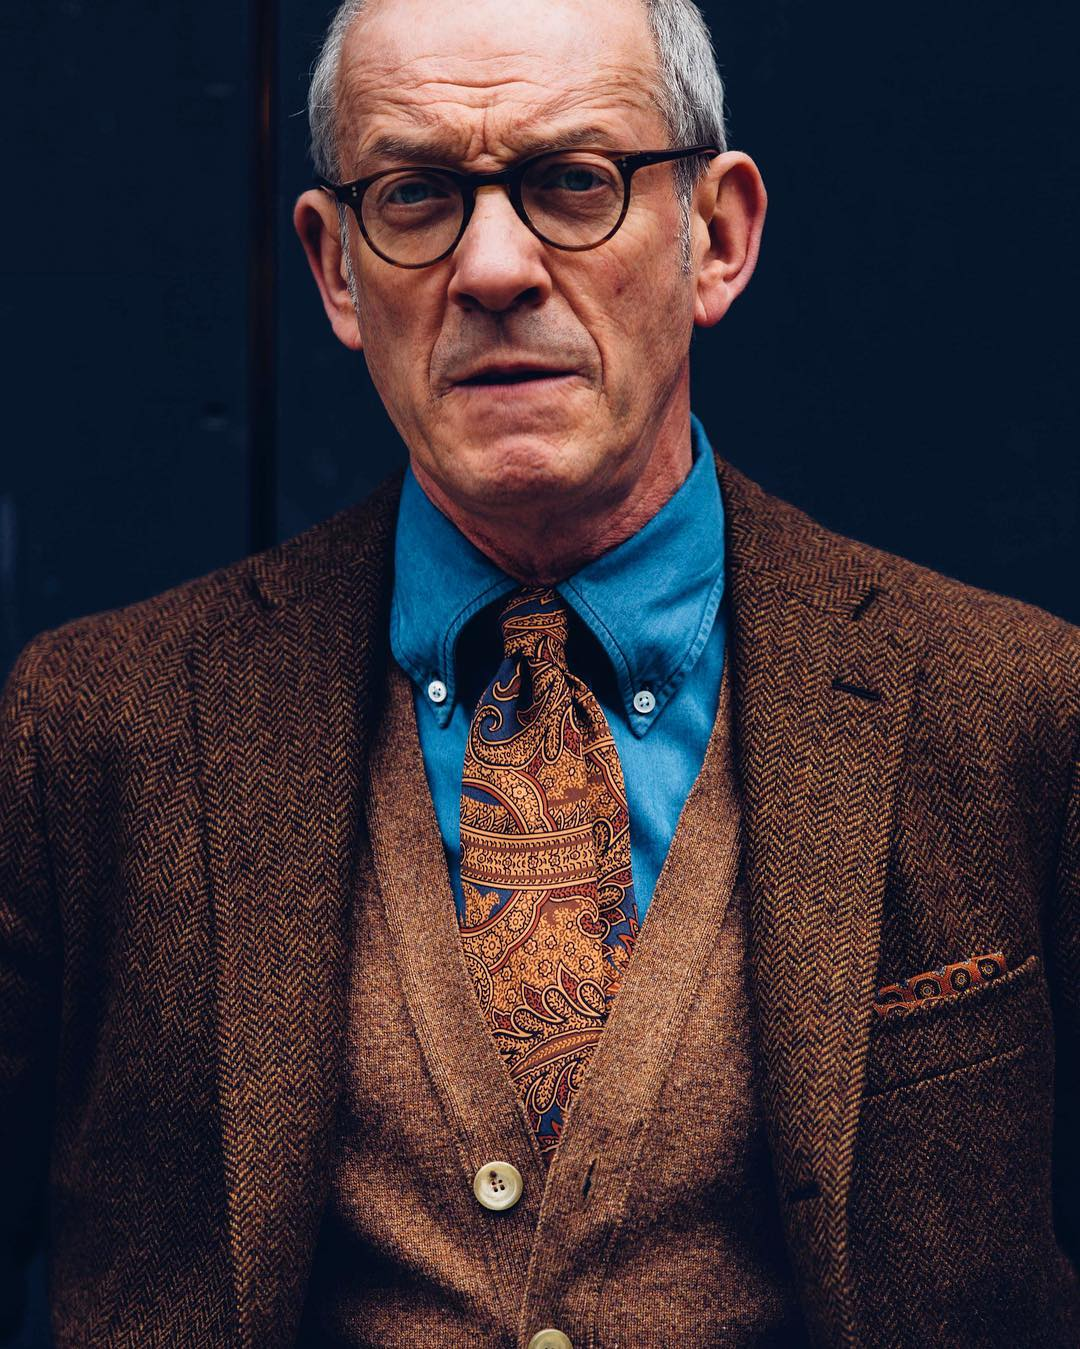 Serious looking man with blue shirt and brown suit jacket wearing round tortoise spectacle frames